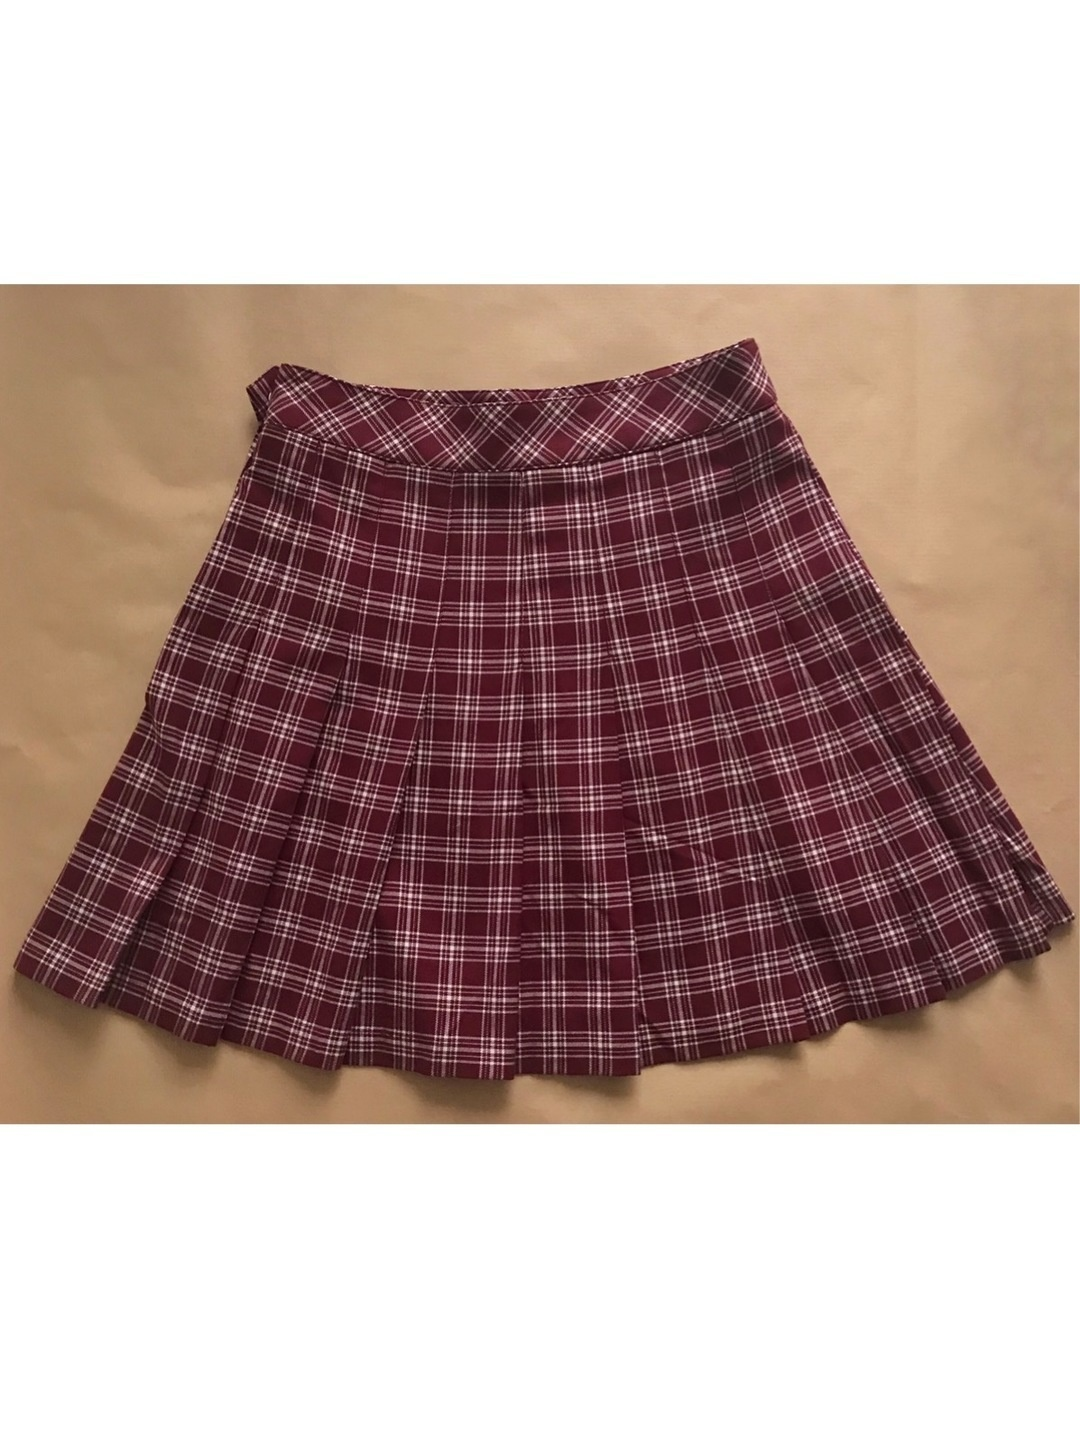 Women's skirts - H&M photo 2